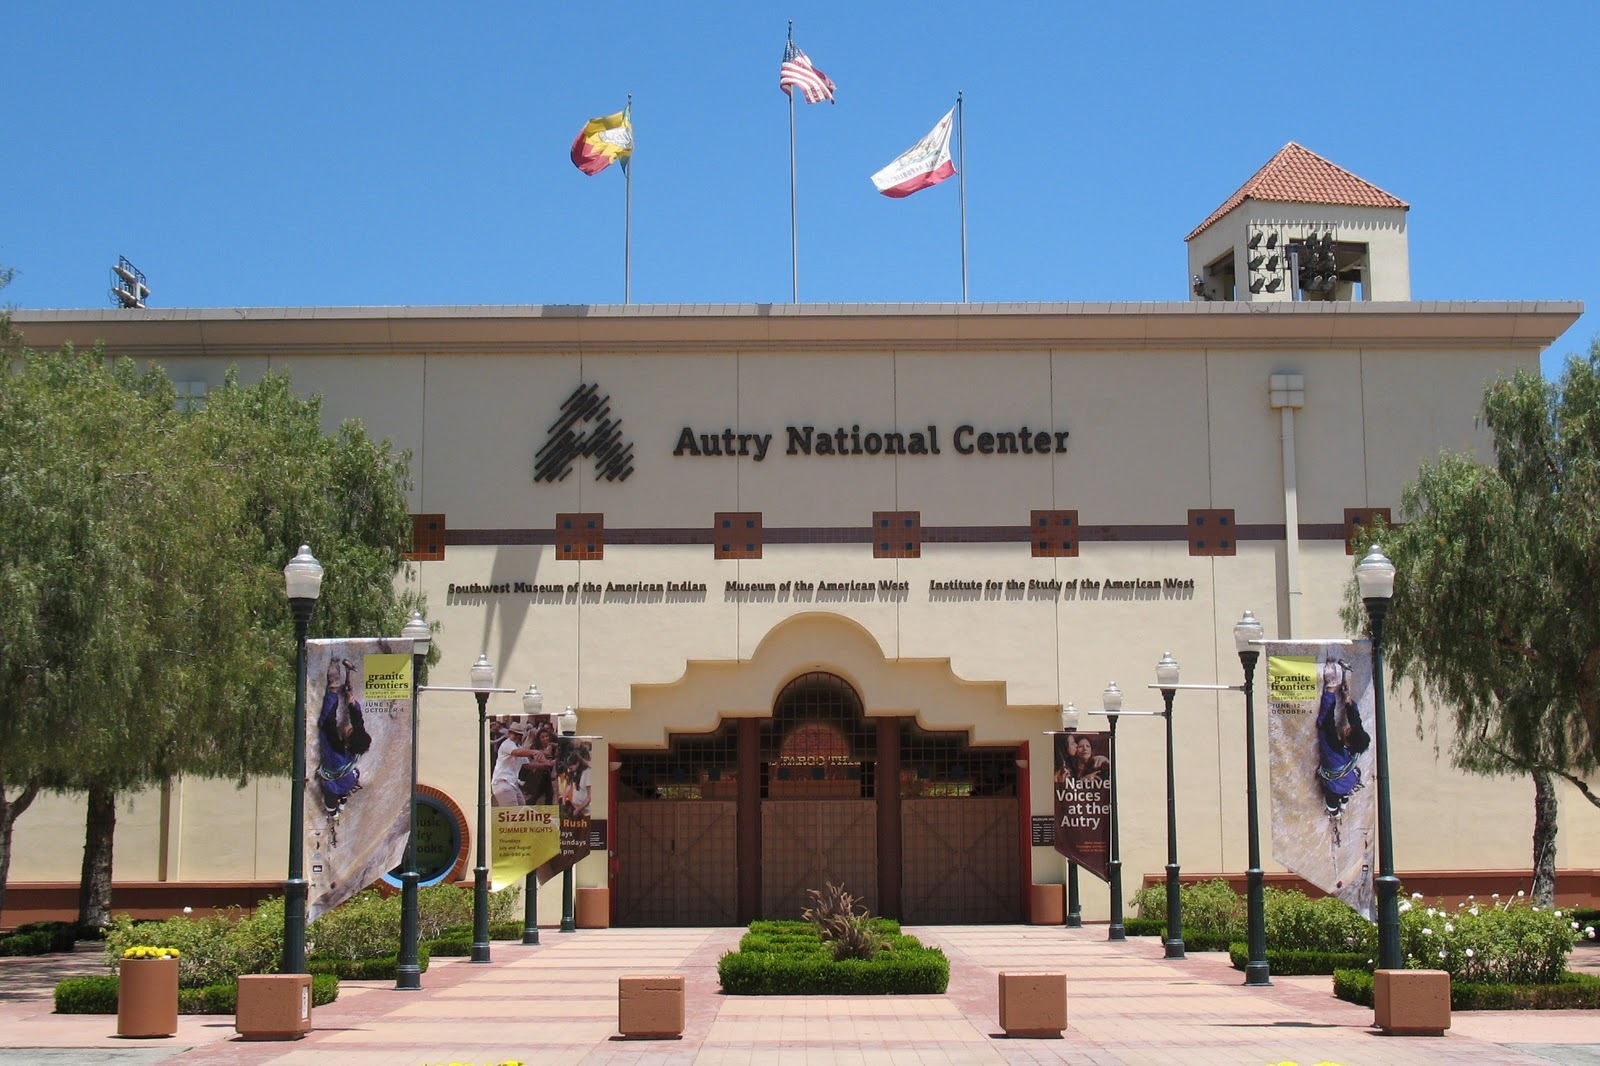 Autry National Center: Museum of the American West